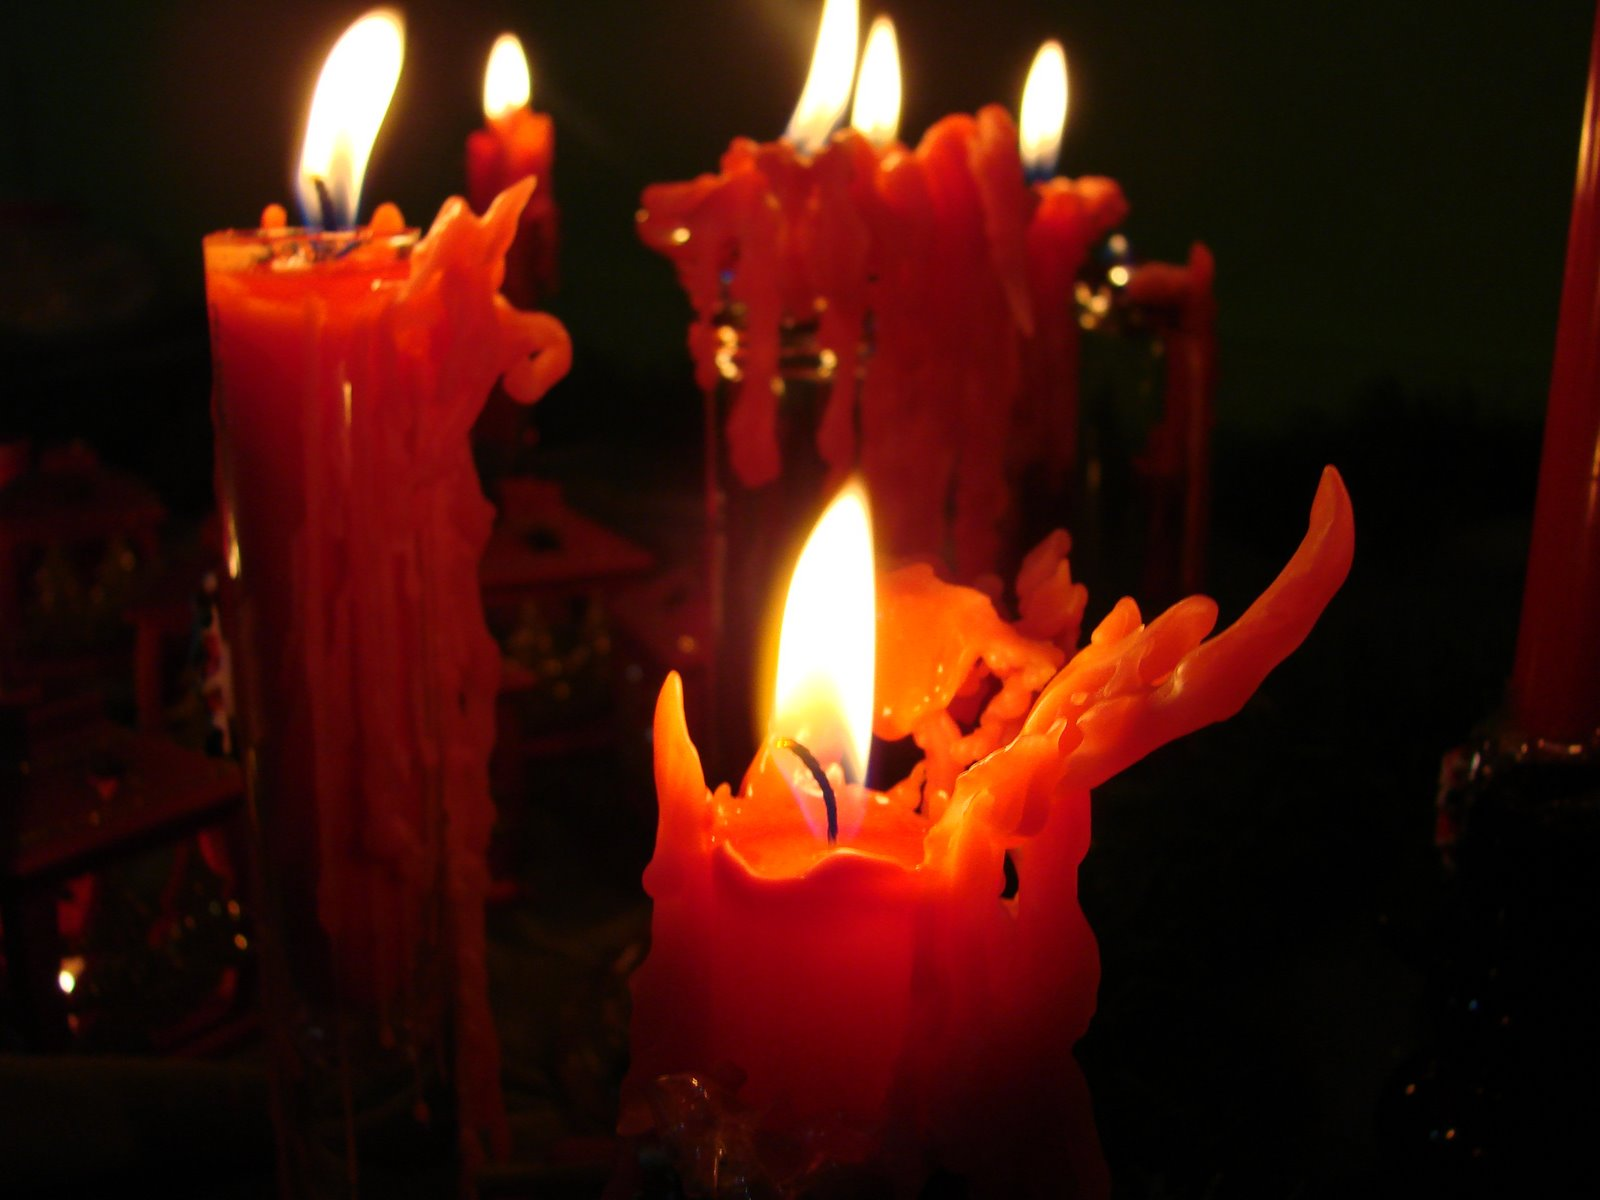 red-candles-wallpapers_6392_16001.jpg